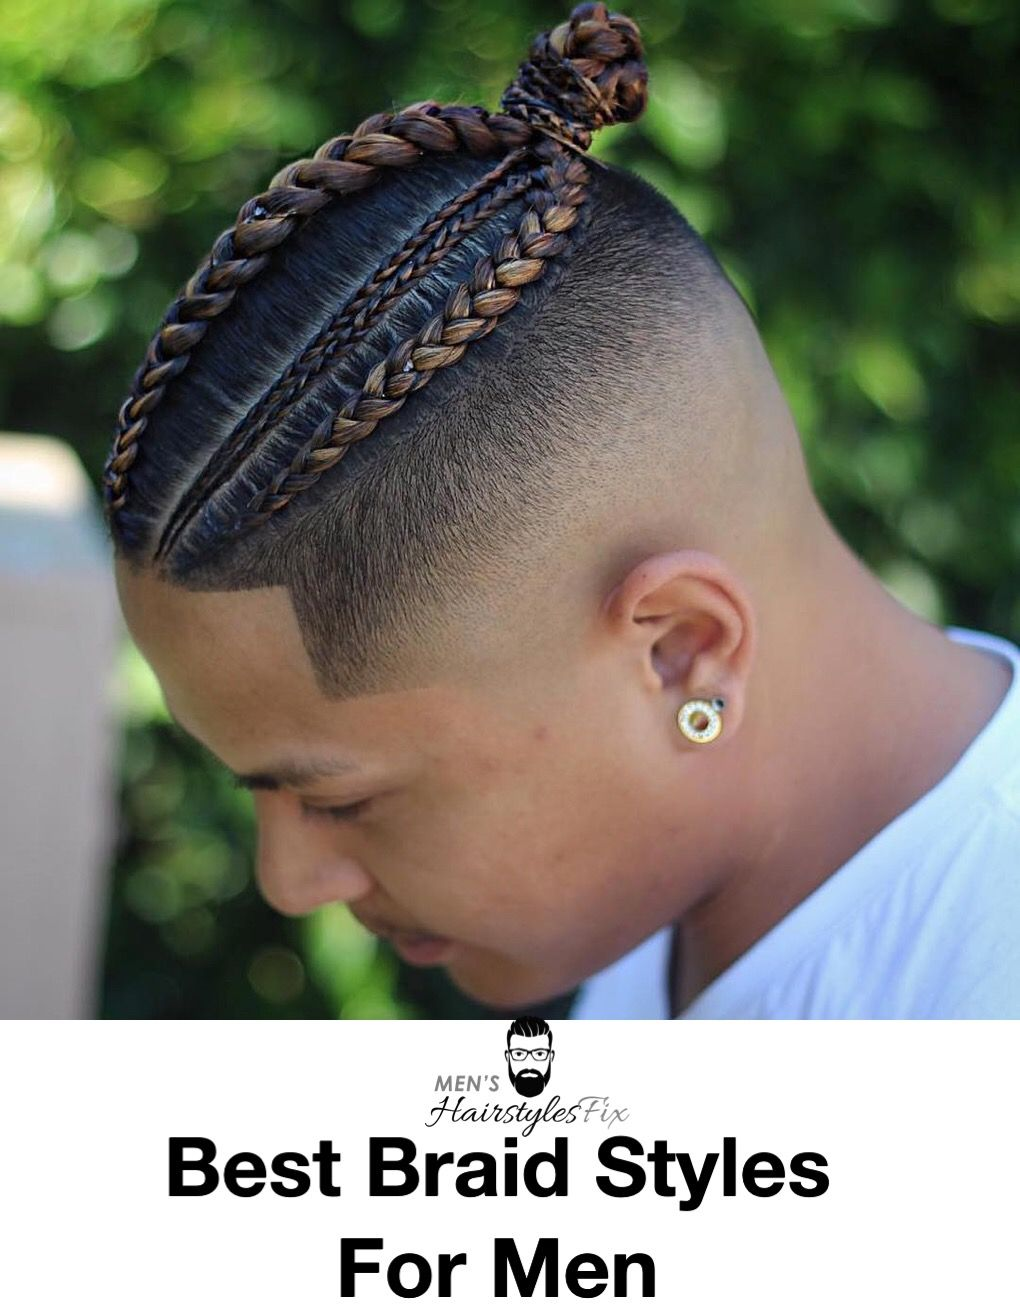 16 best braid styles for men in 2018: tips & tricks to know